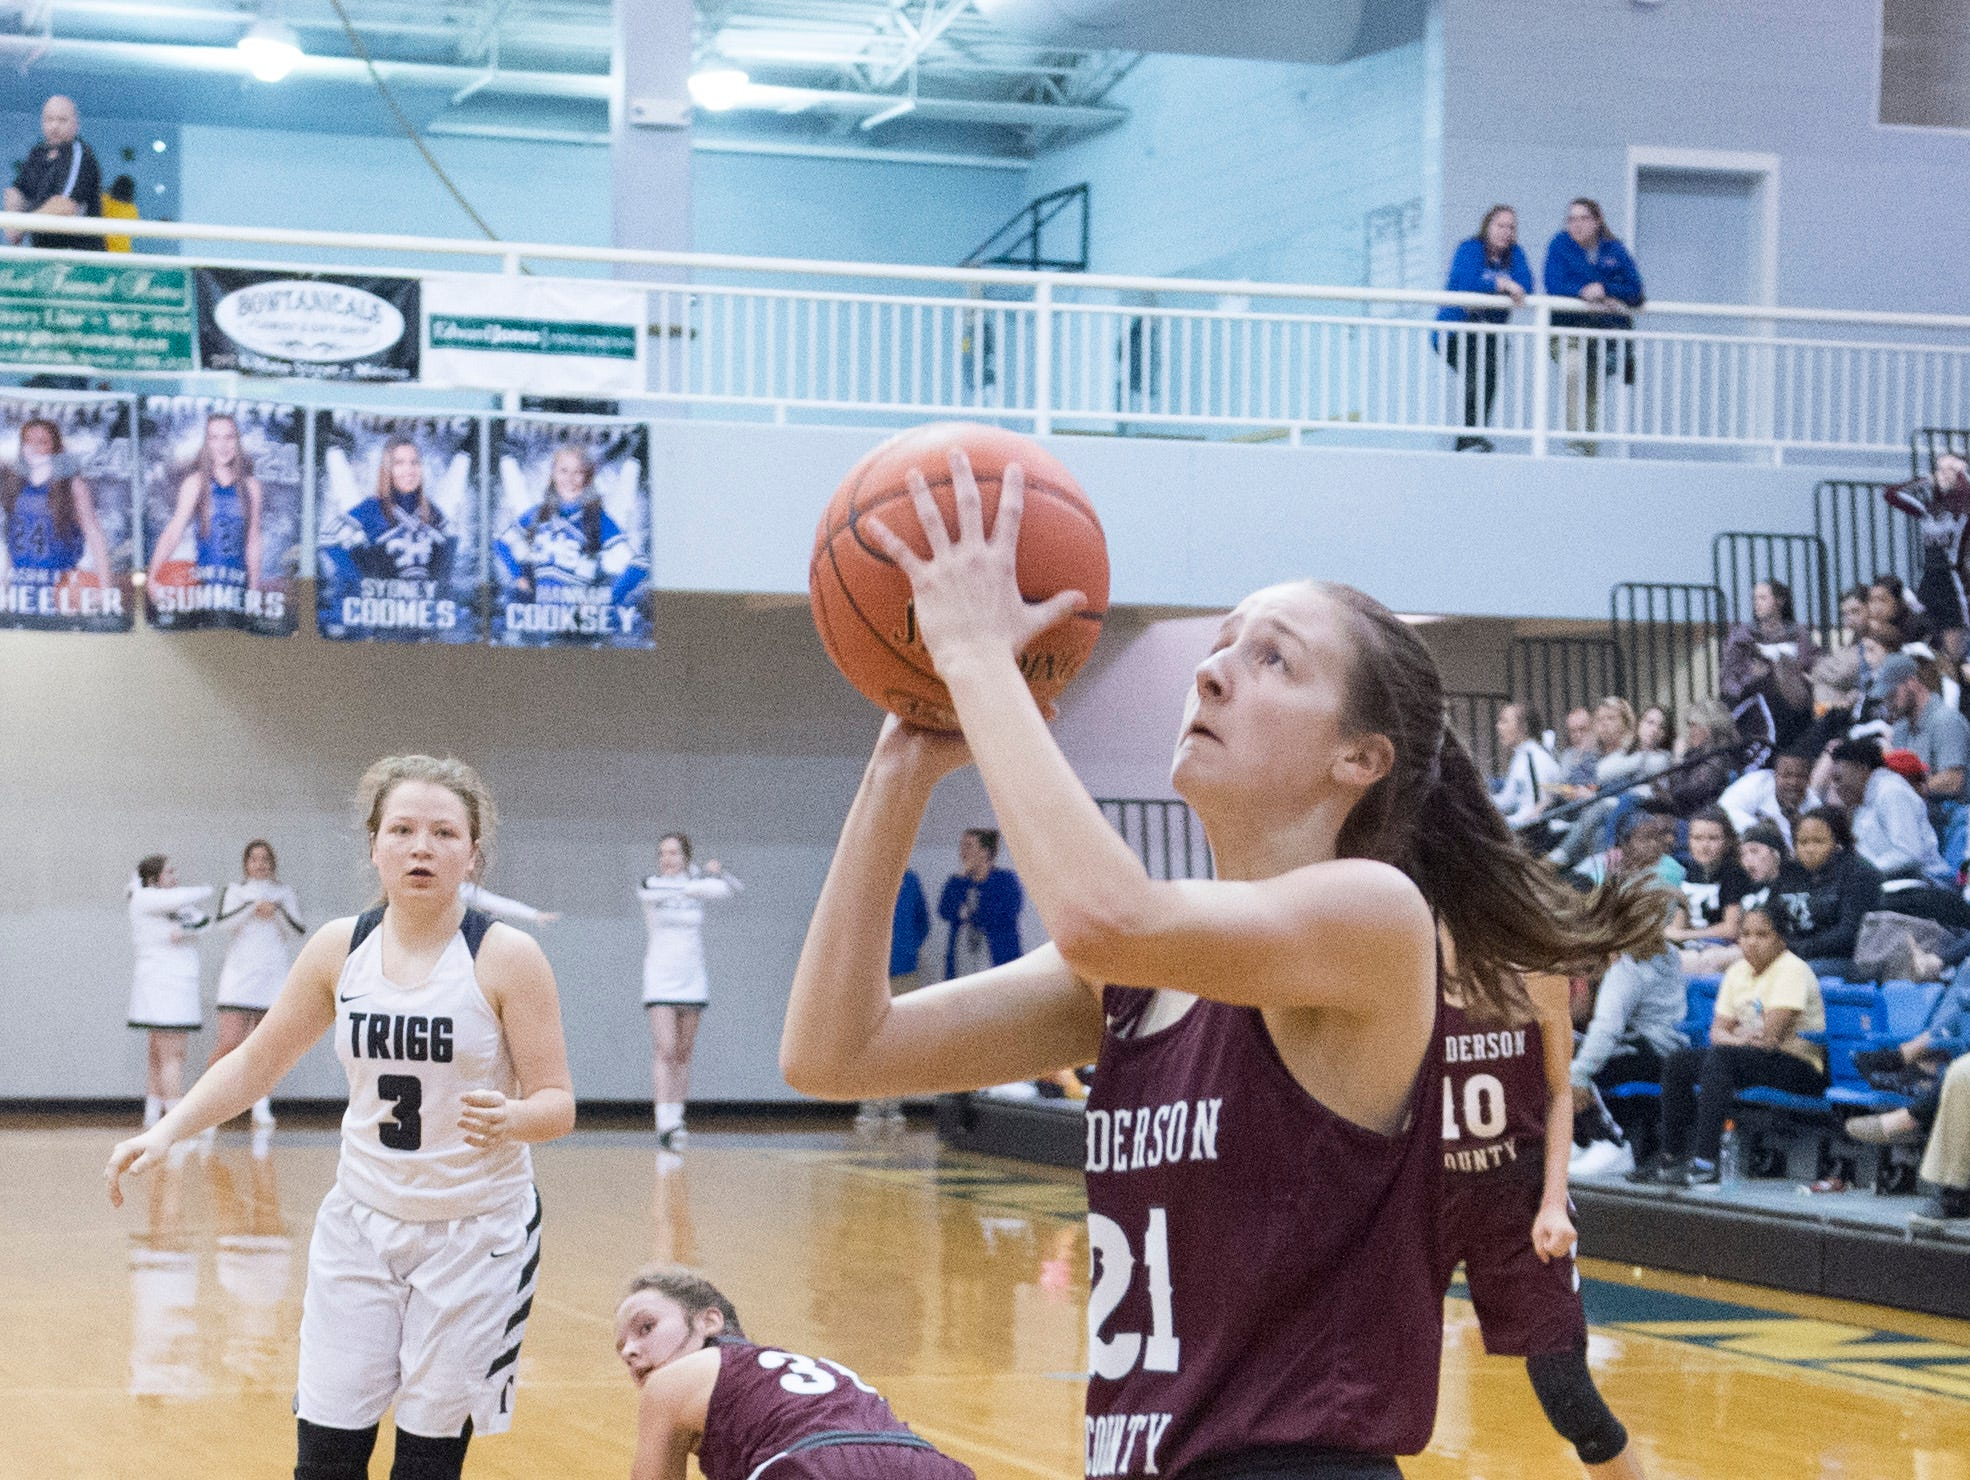 Henderson County's Graci Risely (21) takes a shot during the Trigg County Lady Wildcats vs Henderson County Lady Colonels game of the 2nd Region Tournament at Crittenden County's Rocket Arena Wednesday, Feb. 27, 2019.